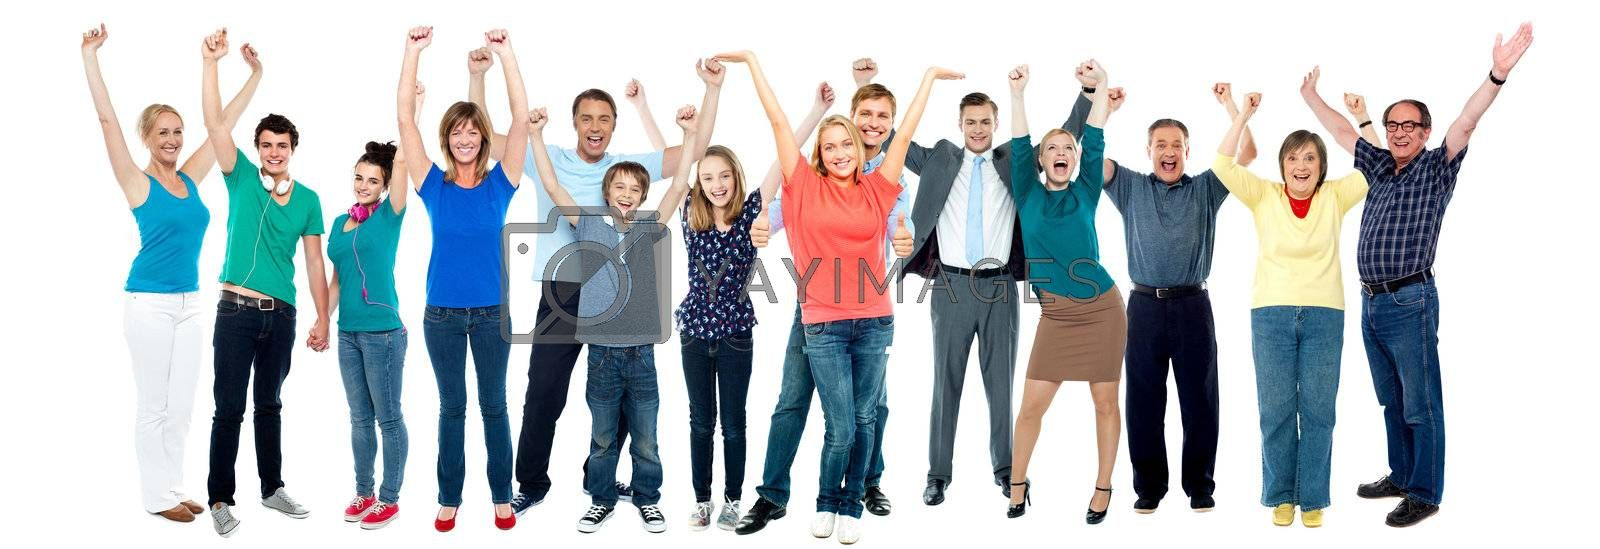 All family members posing cheerfully with raised arms, collage concept.